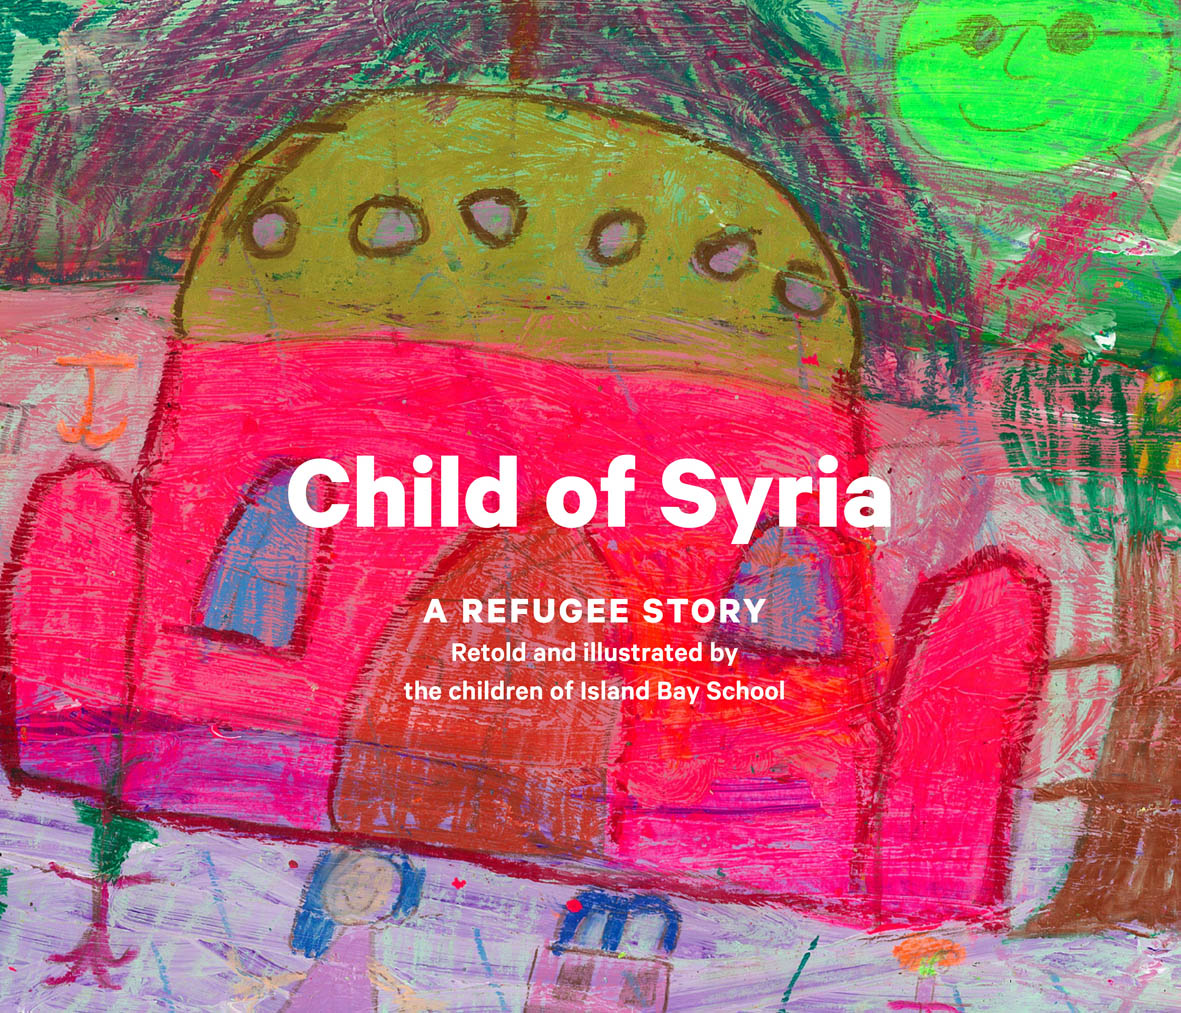 CHILD OF SYRIA